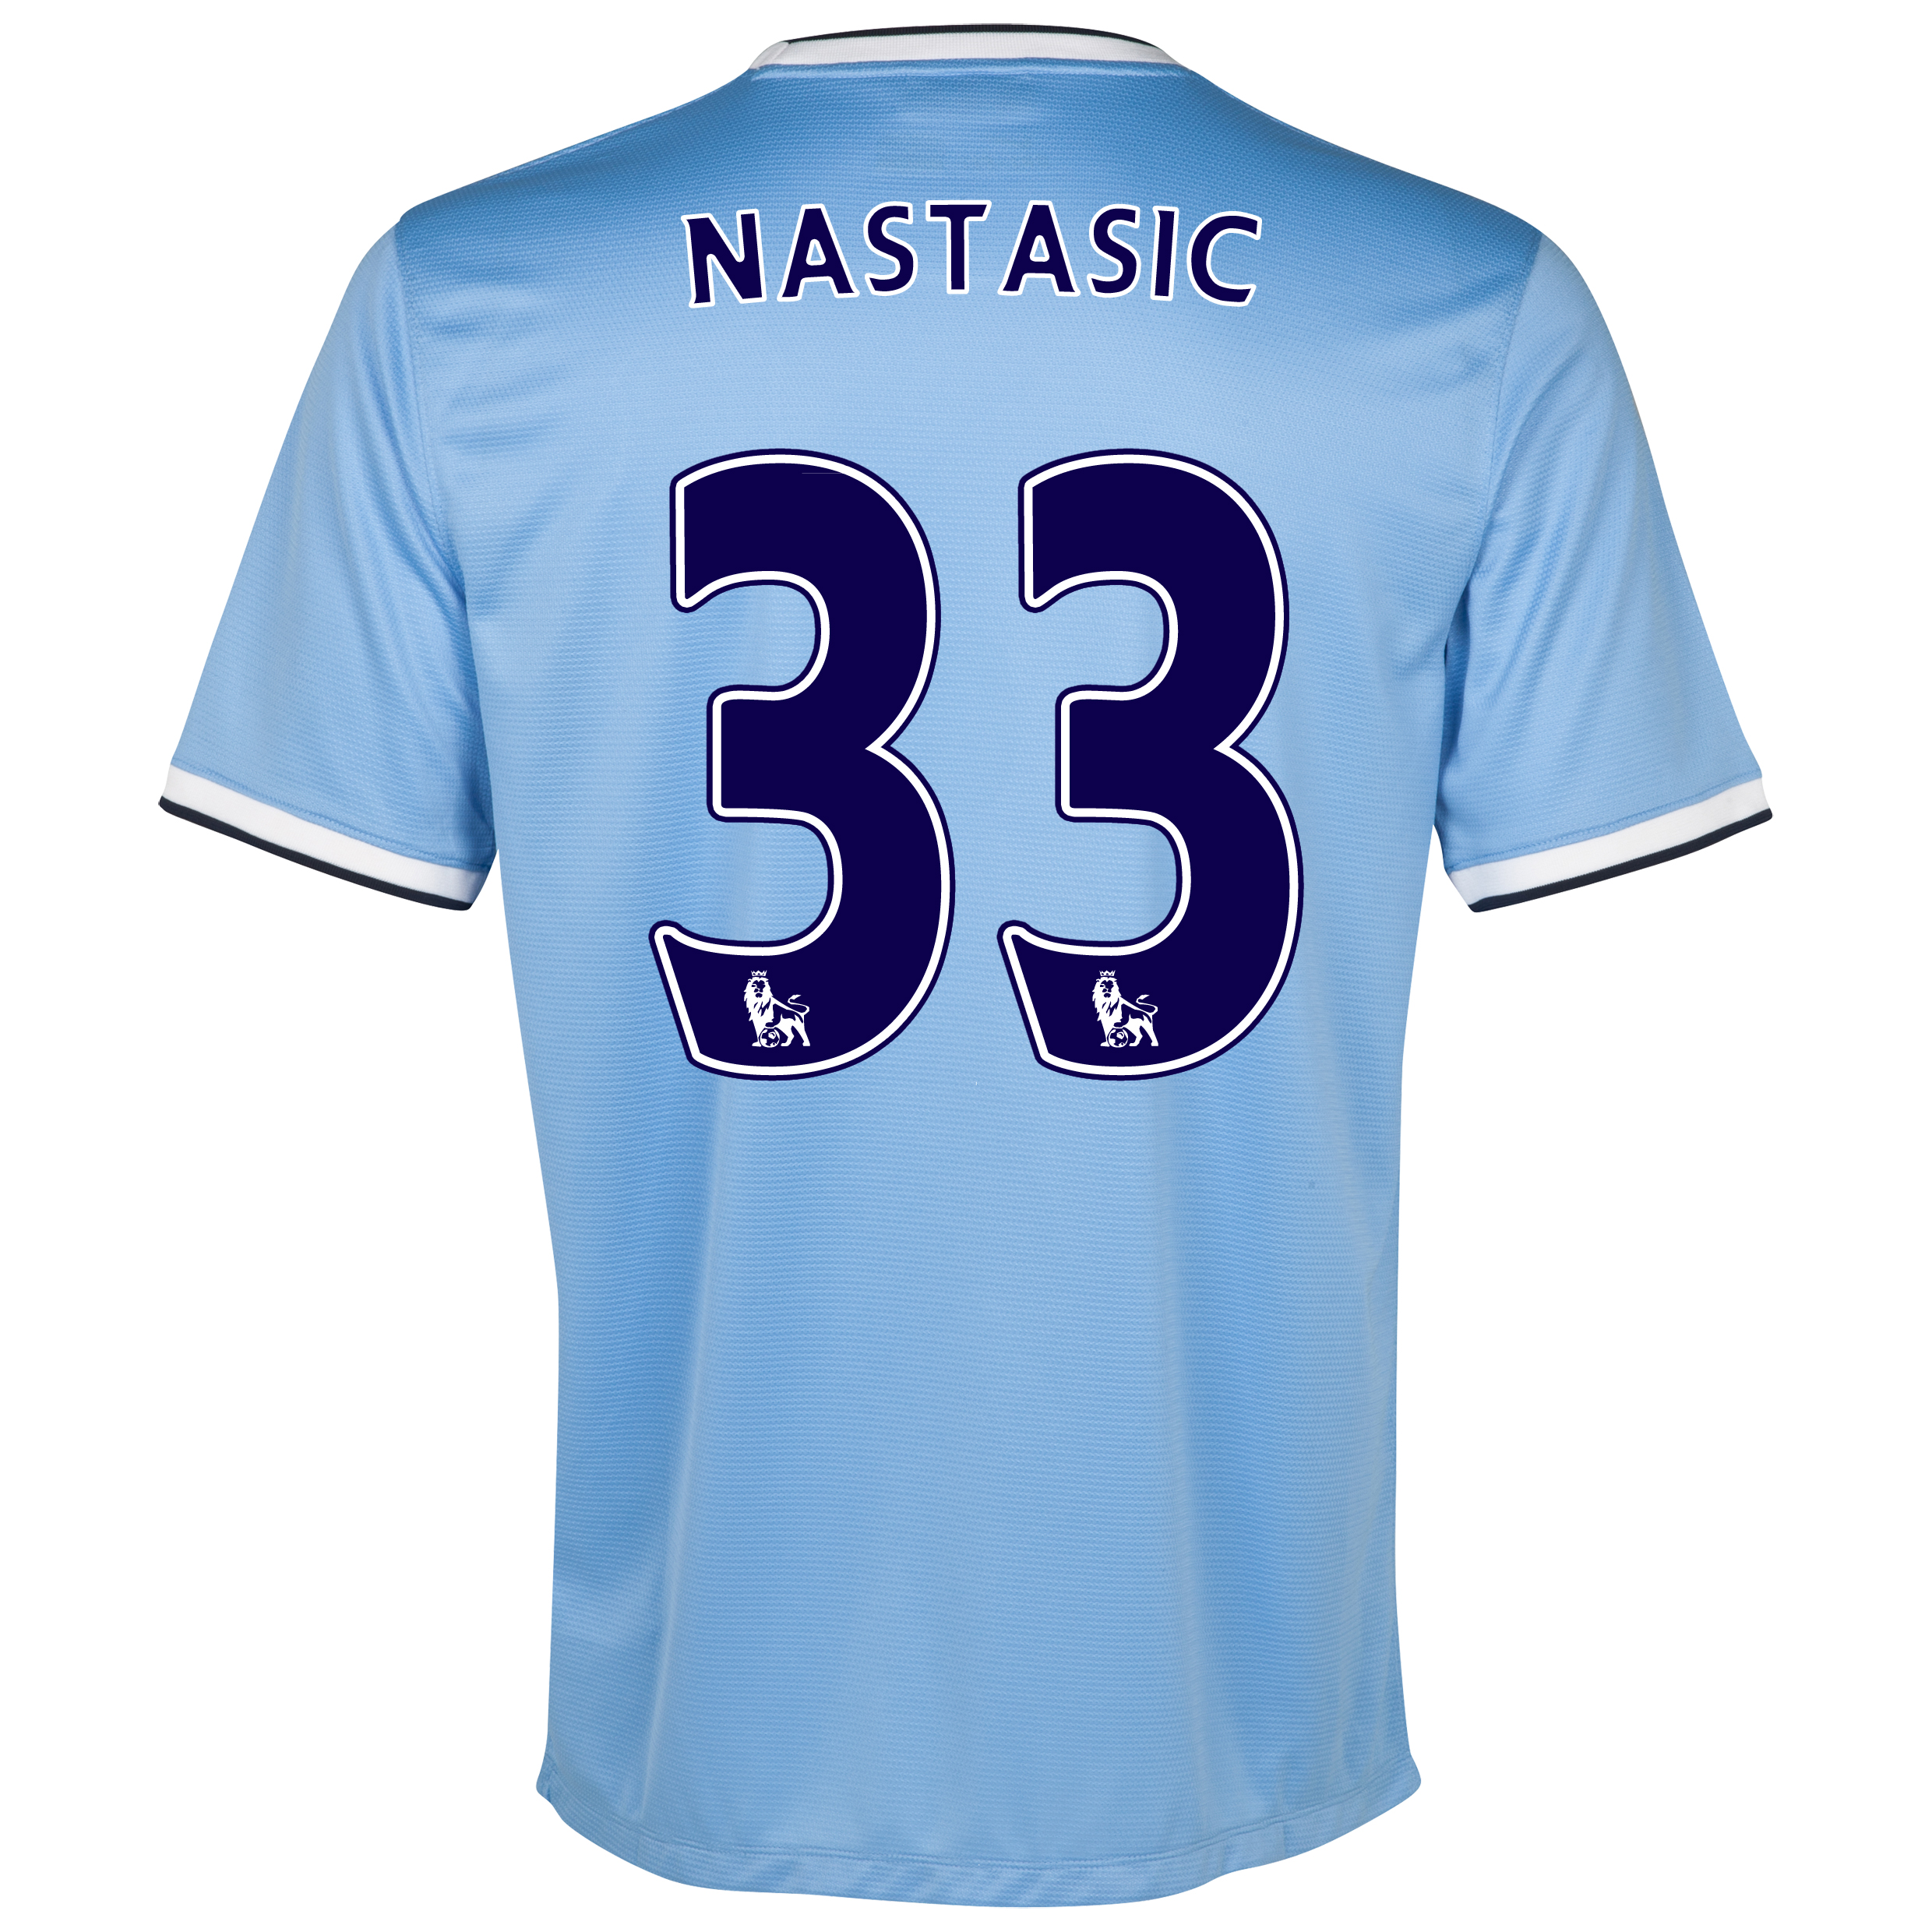 Manchester City Home Shirt 2013/14 - Junior with Nastasic 33 printing